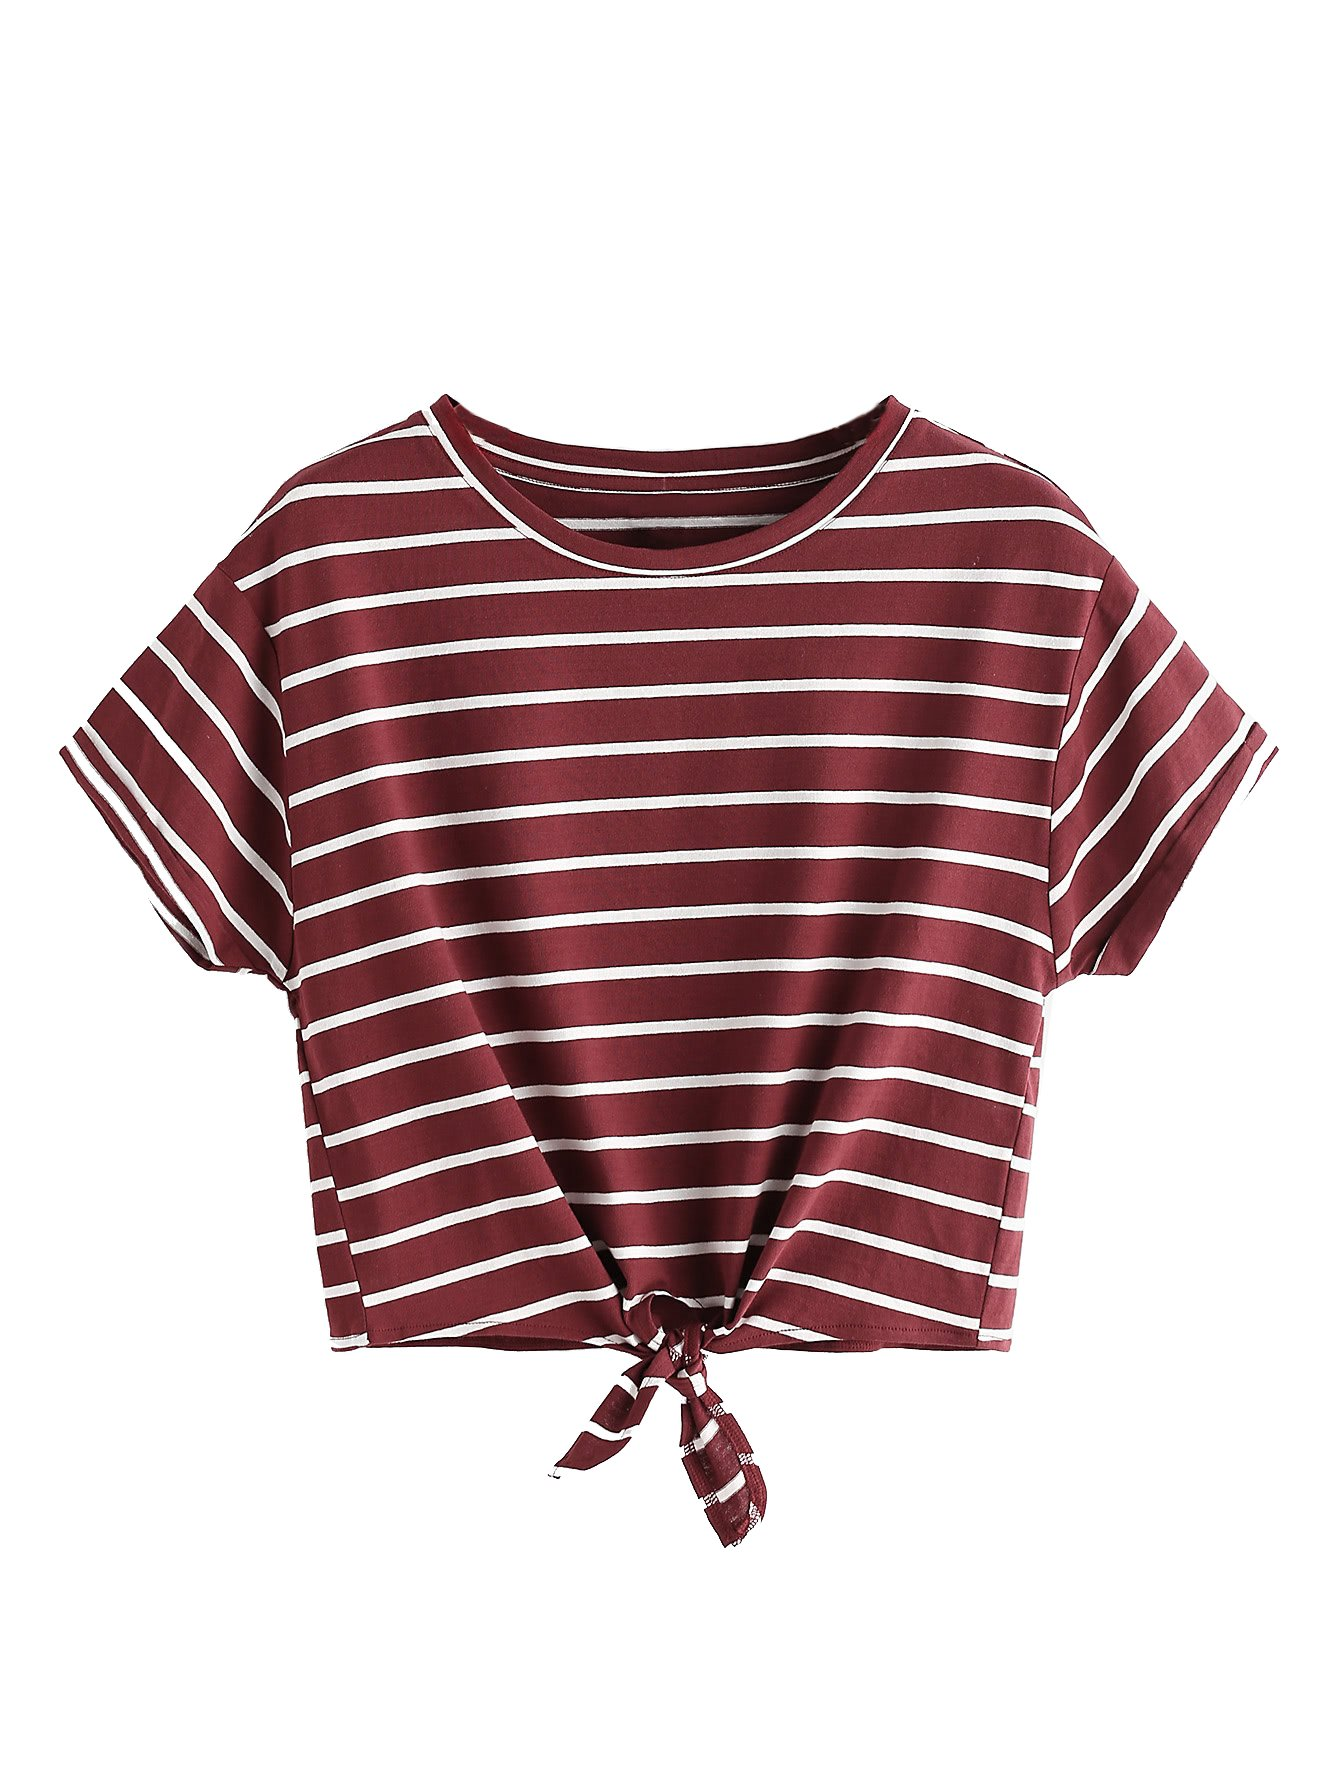 ROMWE Women's Knot Front Long Sleeve Striped Crop Top Tee T-shirt, Burgundy & White, Medium / US 4-6